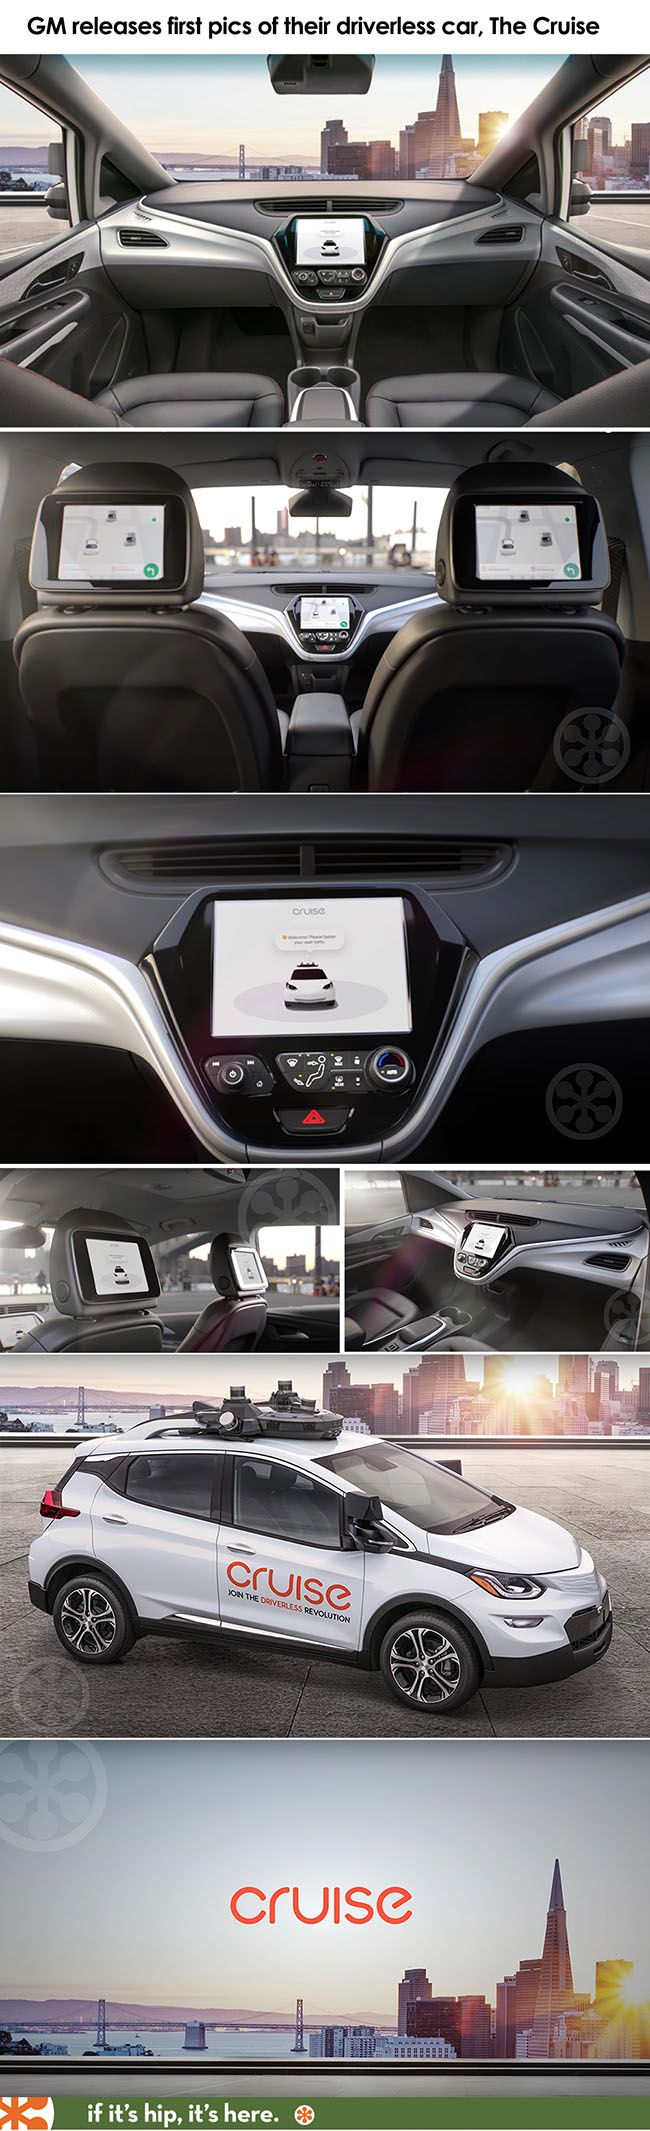 GM releases photos of its first driverless car without a steering wheel.